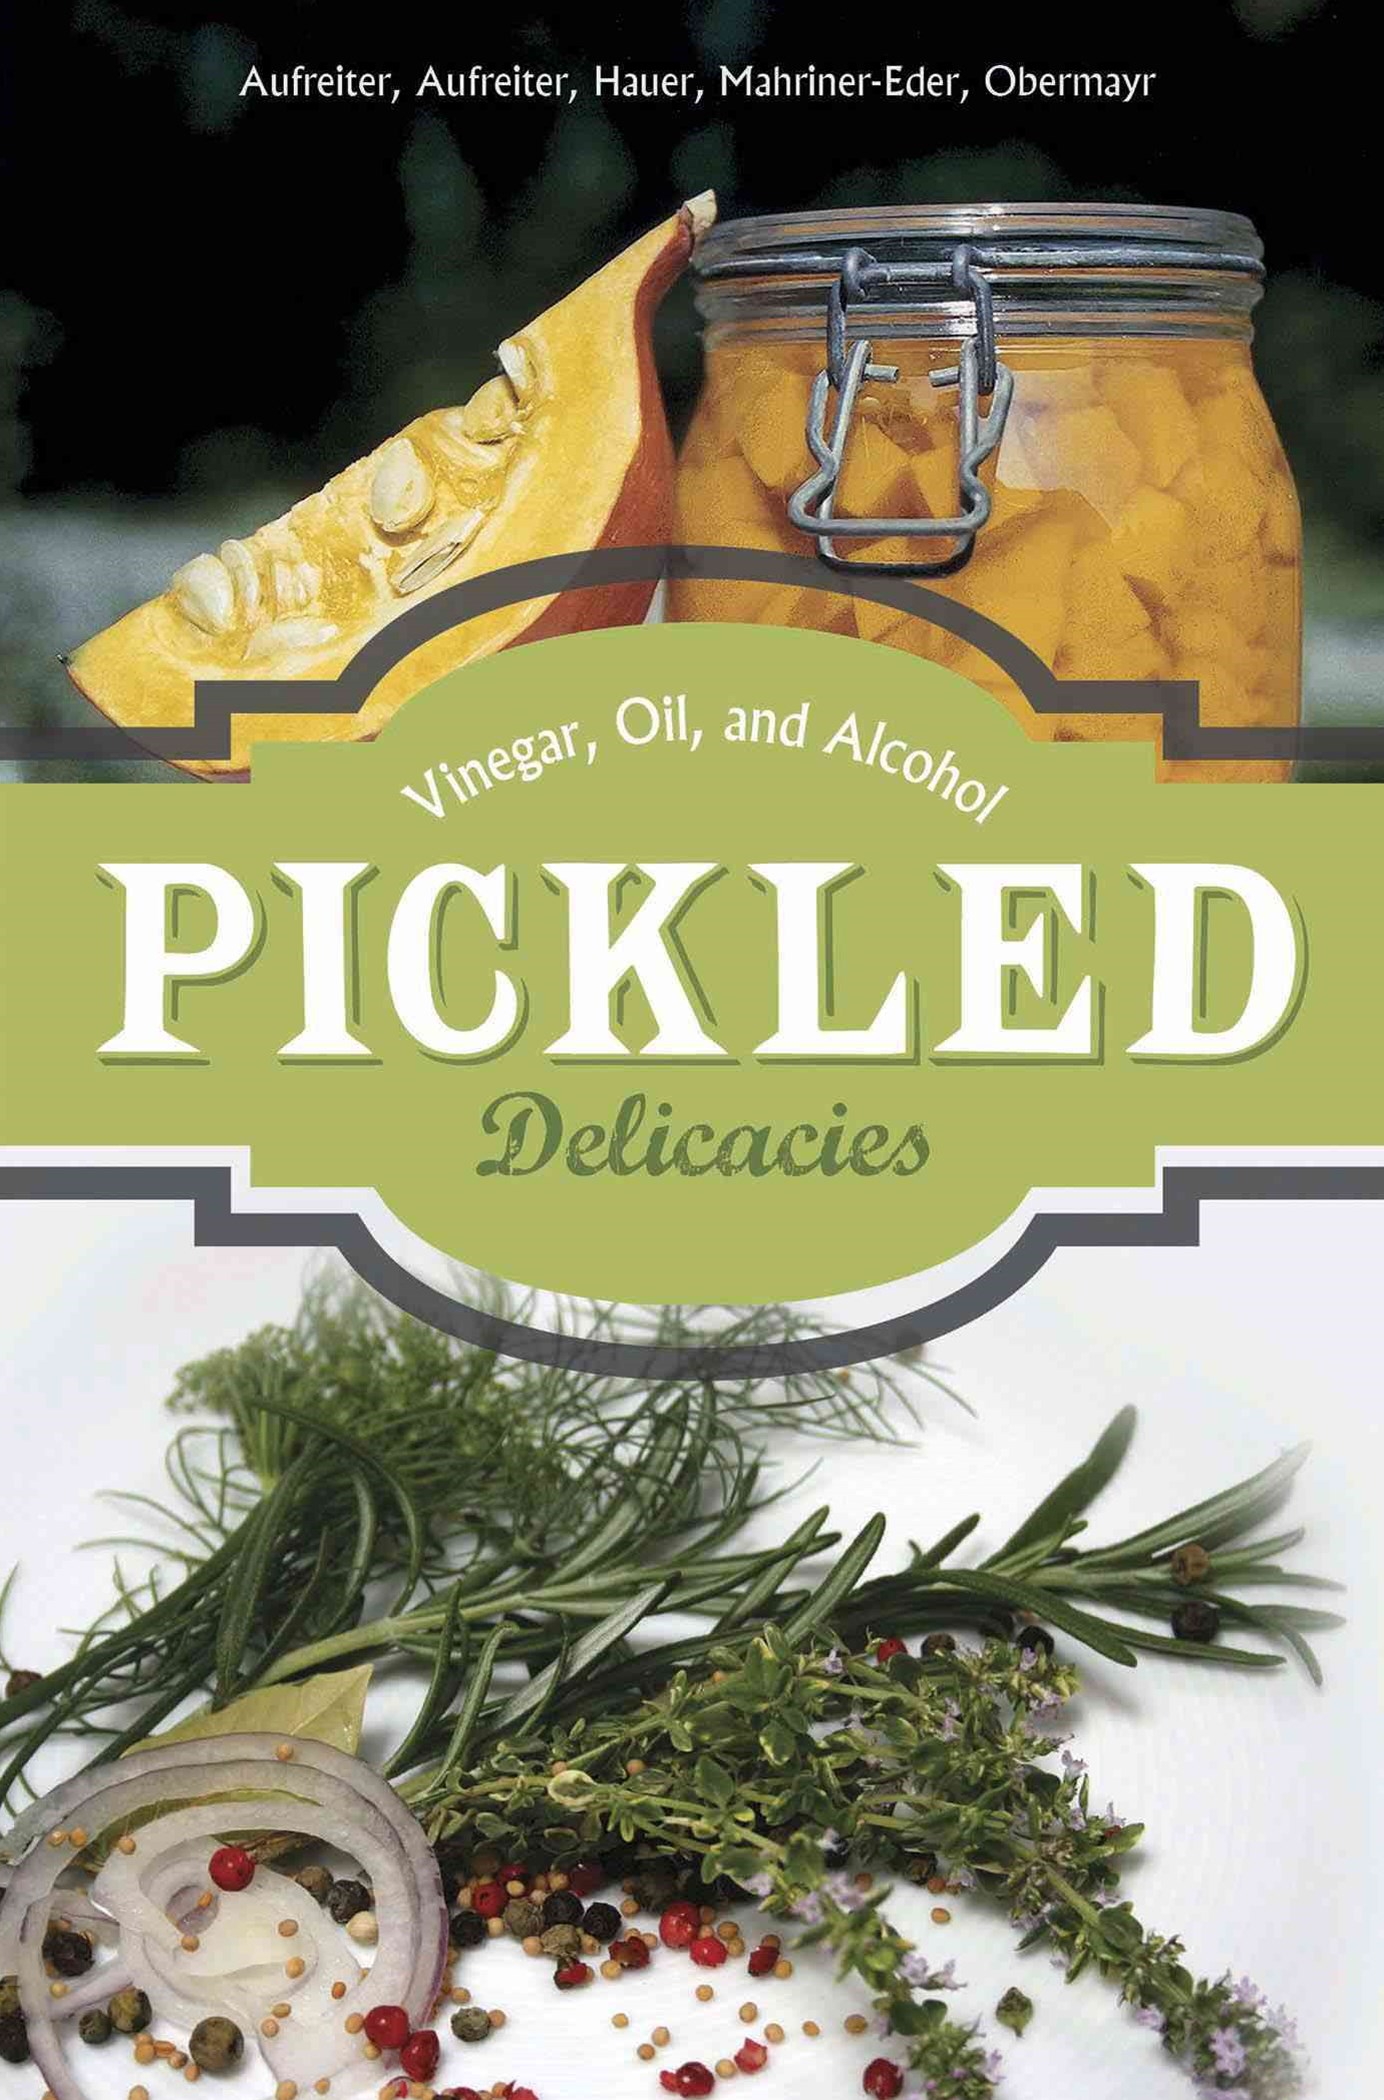 Pickled Delicacies: In Vinegar, Oil, and Alcohol